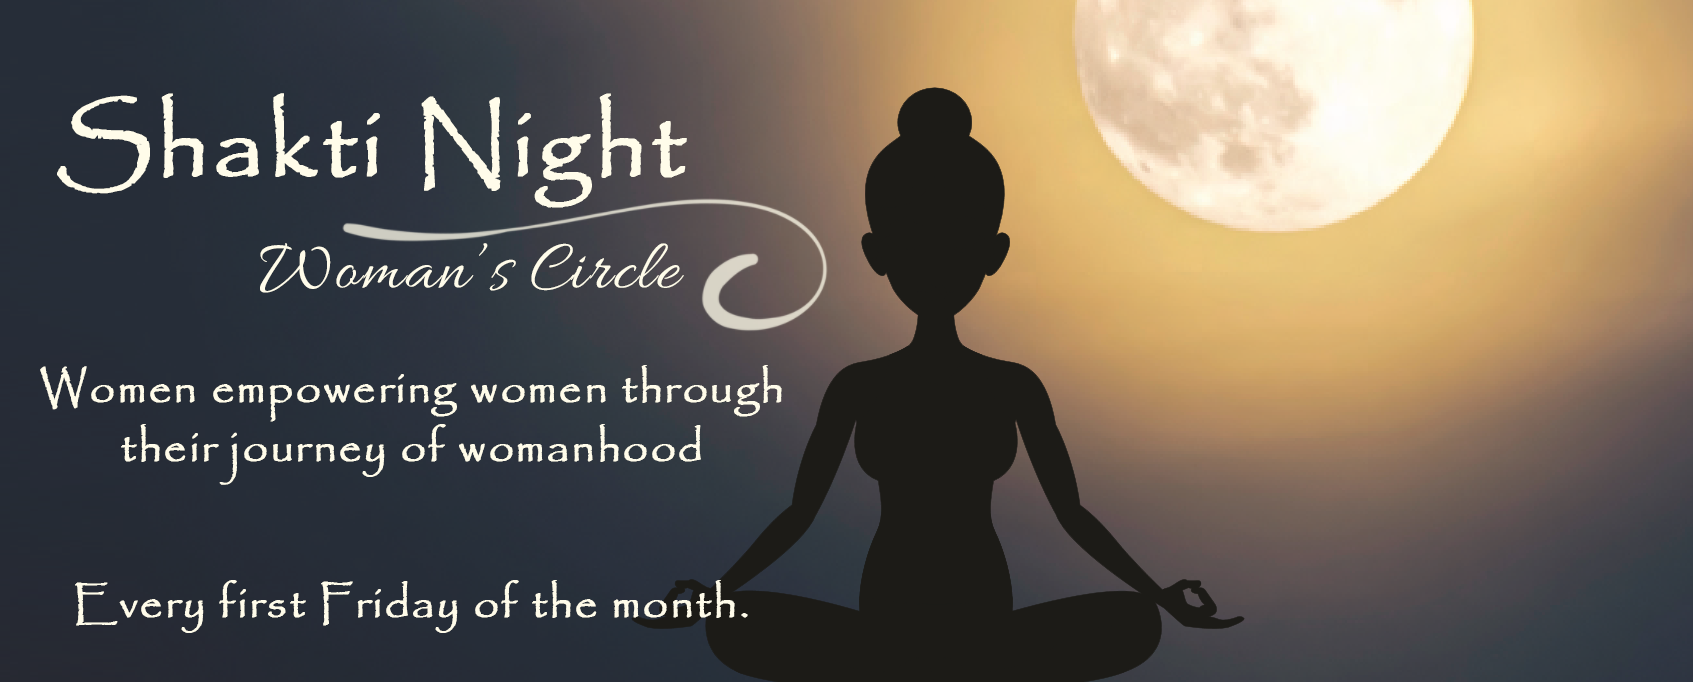 Shakti Night Woman's Circle